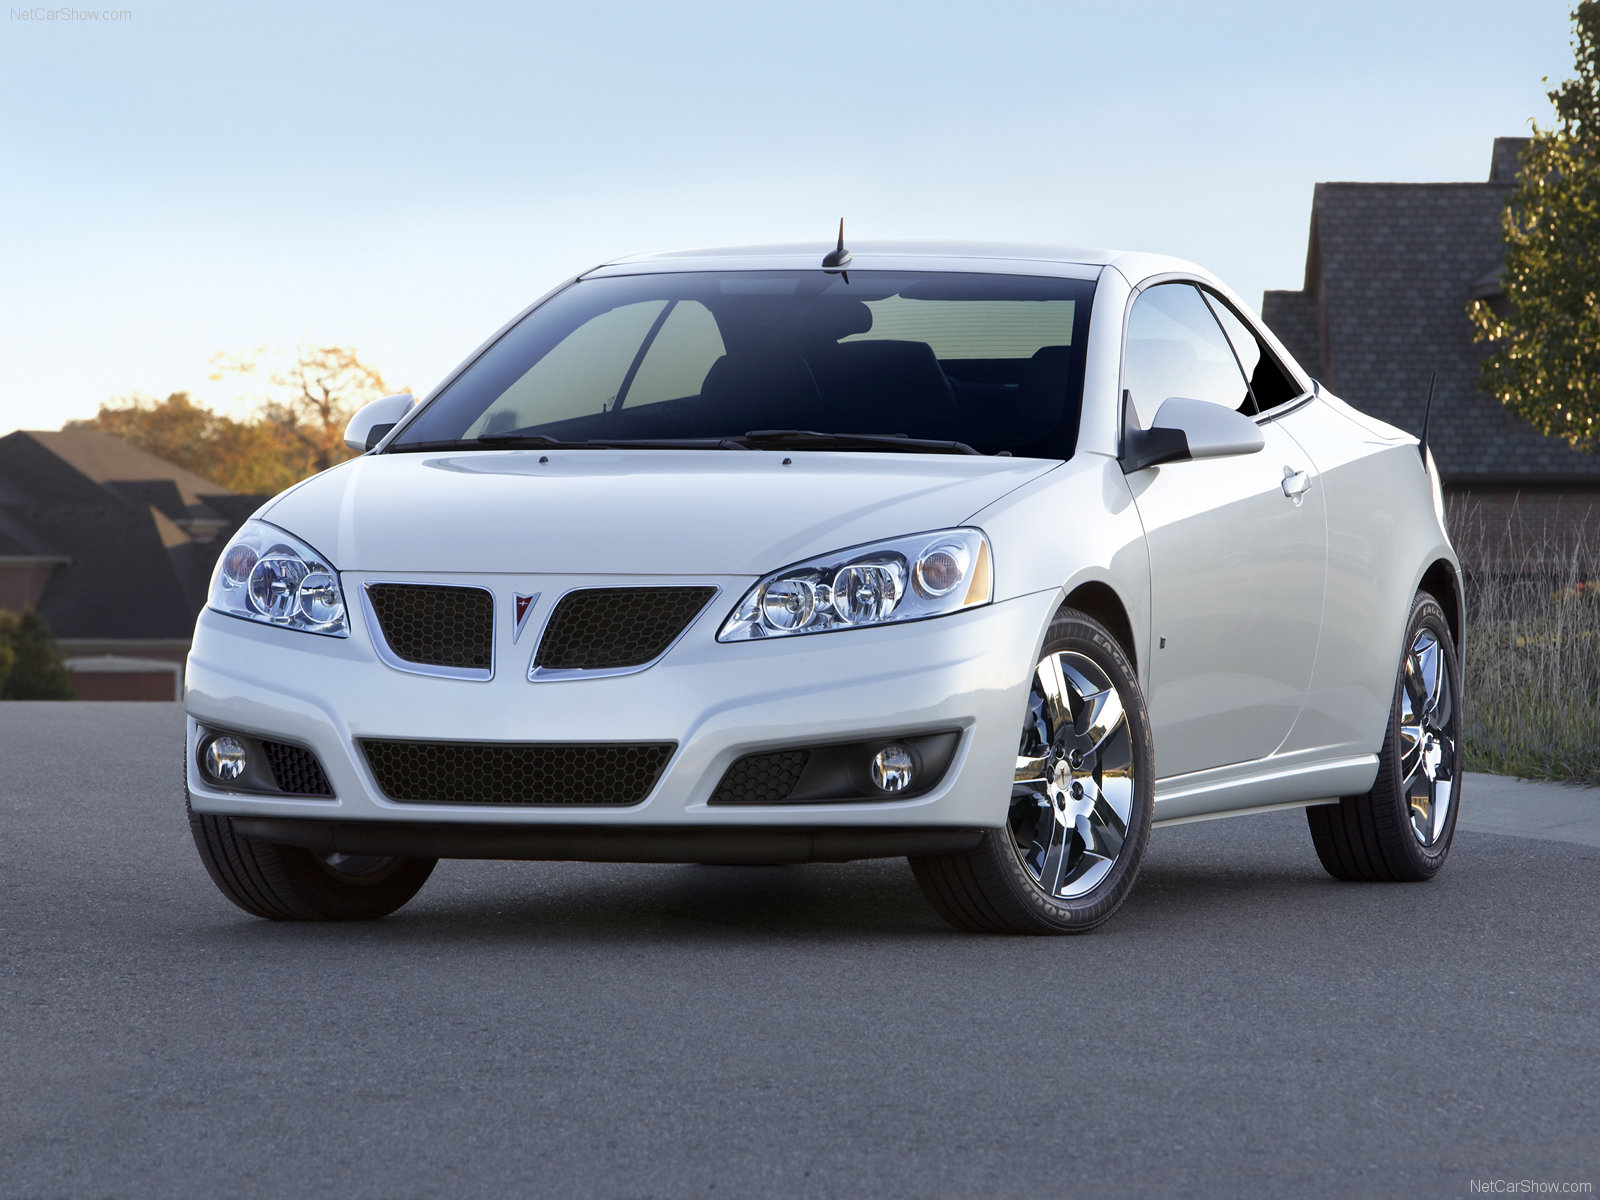 Pontiac G6 Gtp Convertible Picture 59703 Pontiac Photo Gallery Carsbase Com